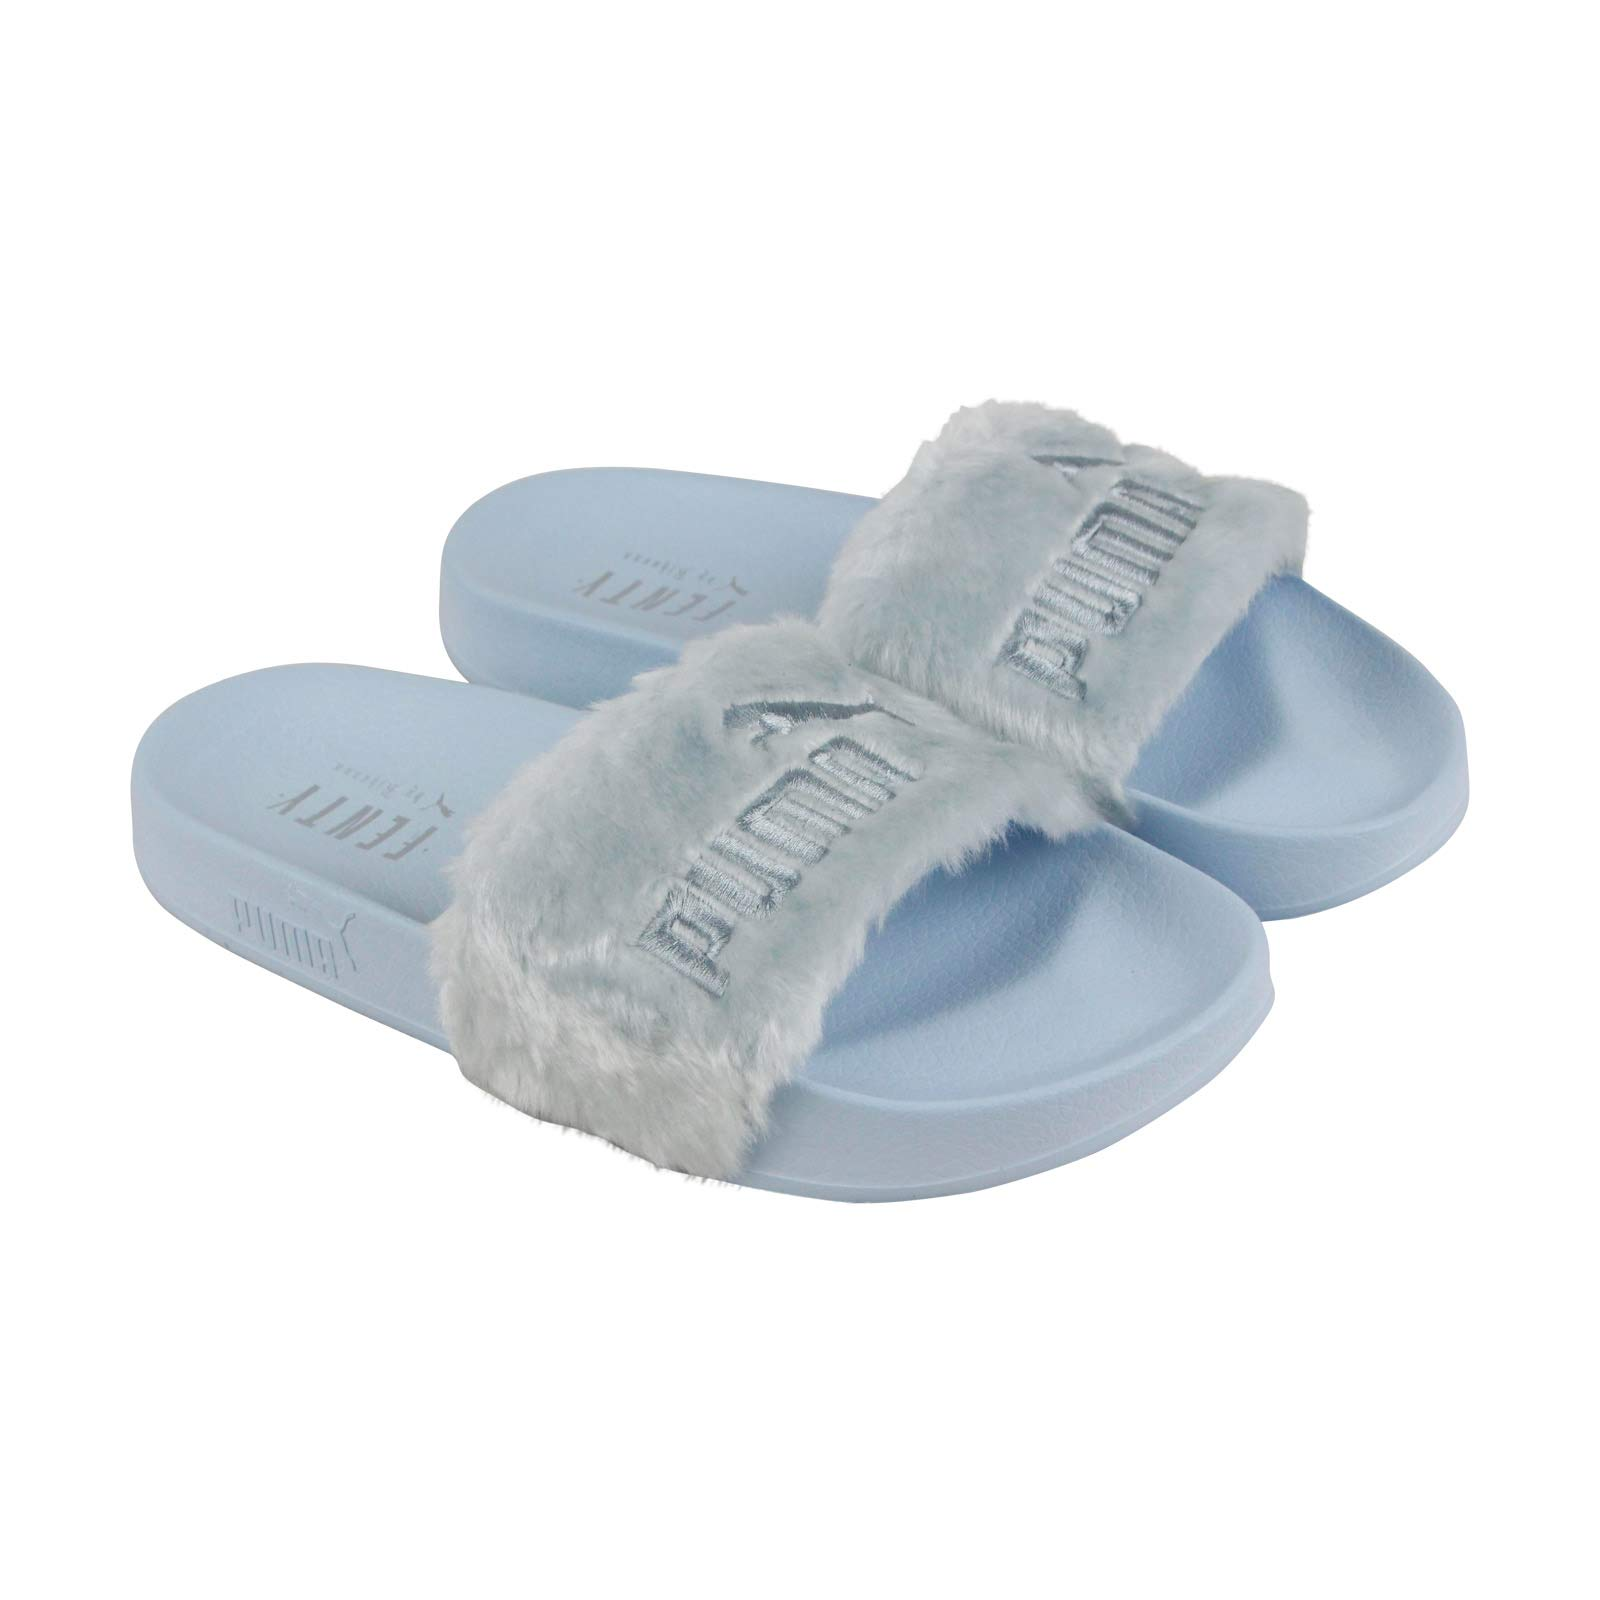 0ff6032534ab Galleon - PUMA Women s Fenty X PUMA Faux Fur Slides